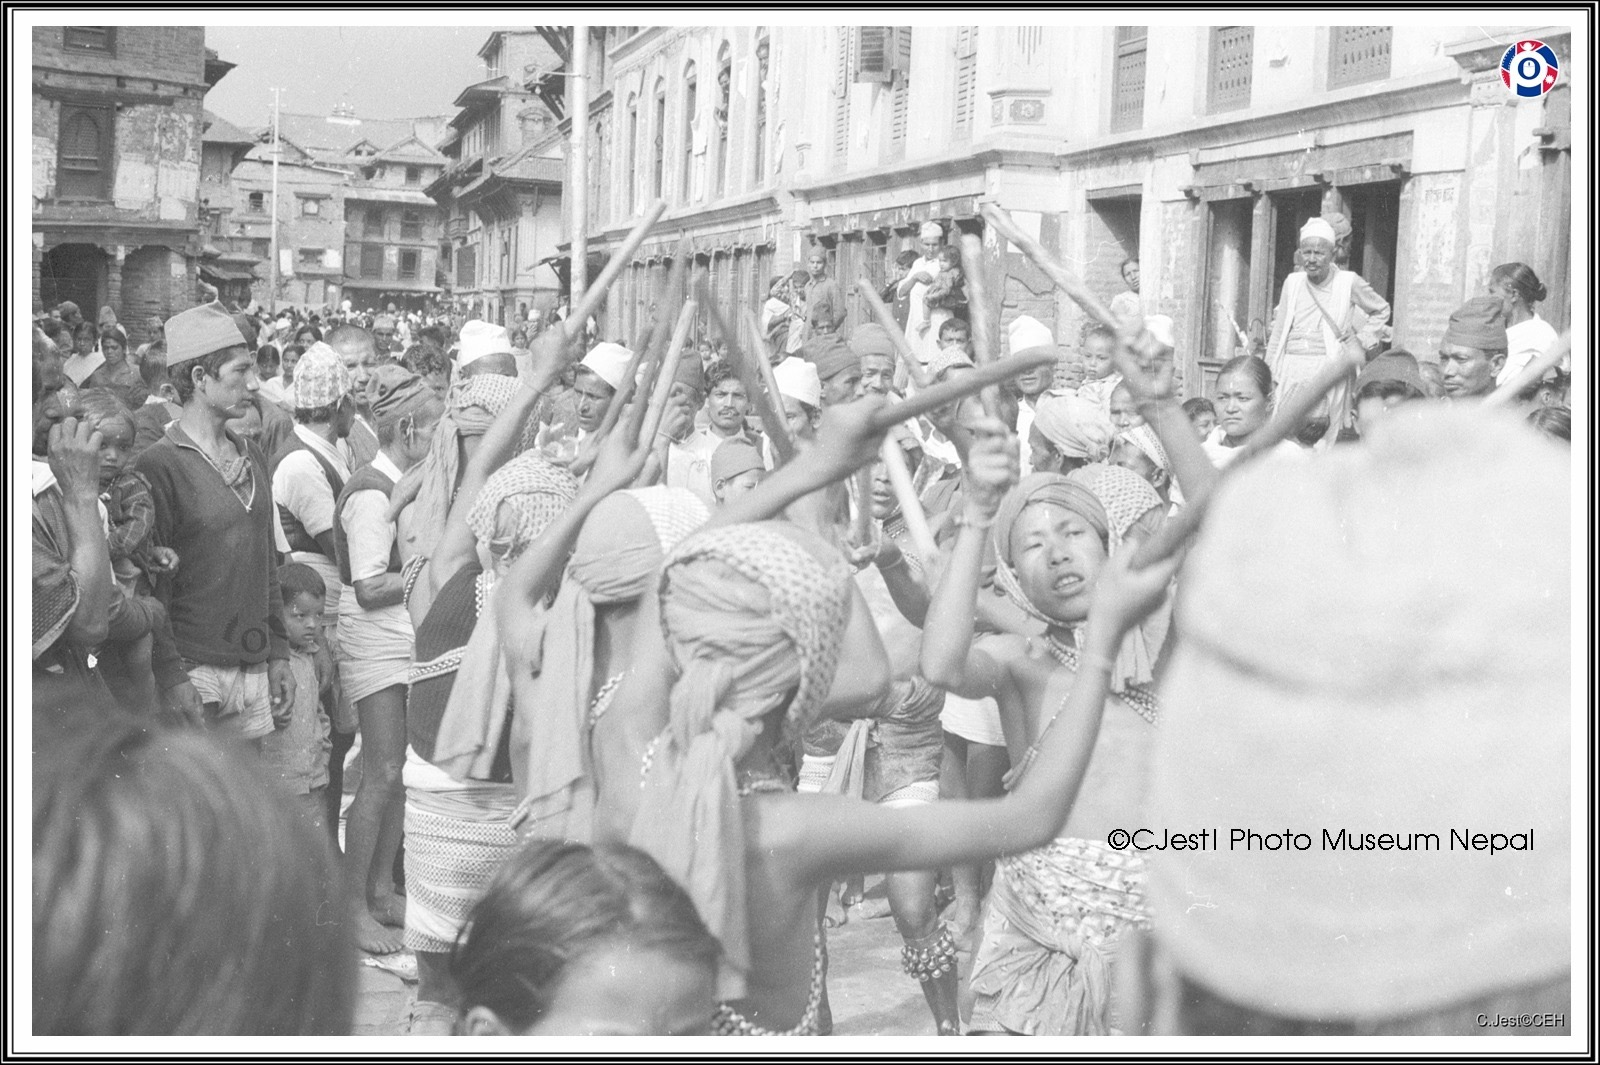 Old photo of a stick dance being done in Kathmandu, Nepal